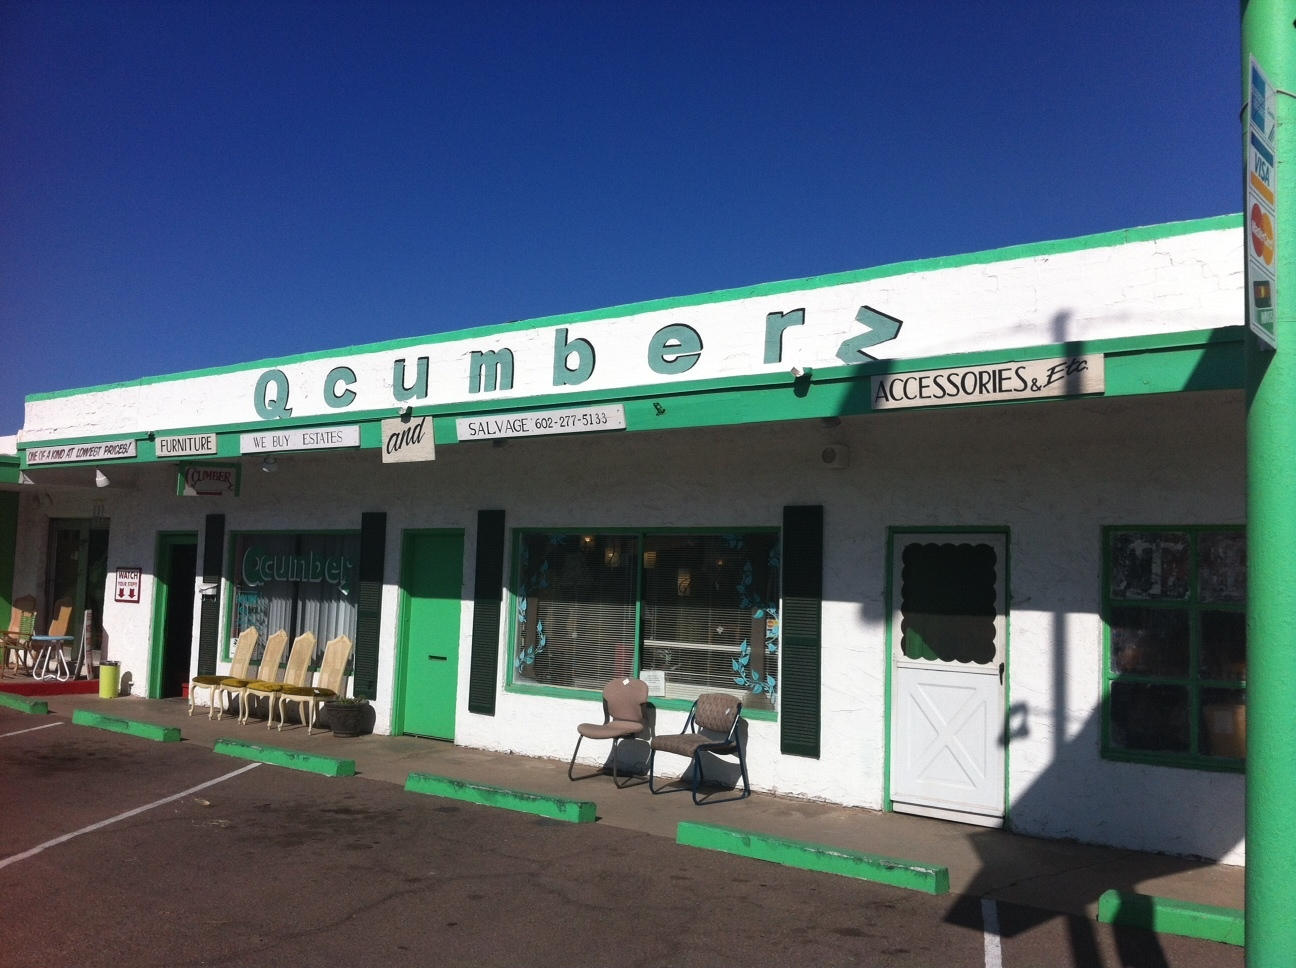 Qcumberz doesn't look like much from the outside, but get inside and you find it is jam-packed with vintage and kitchy artifacts.